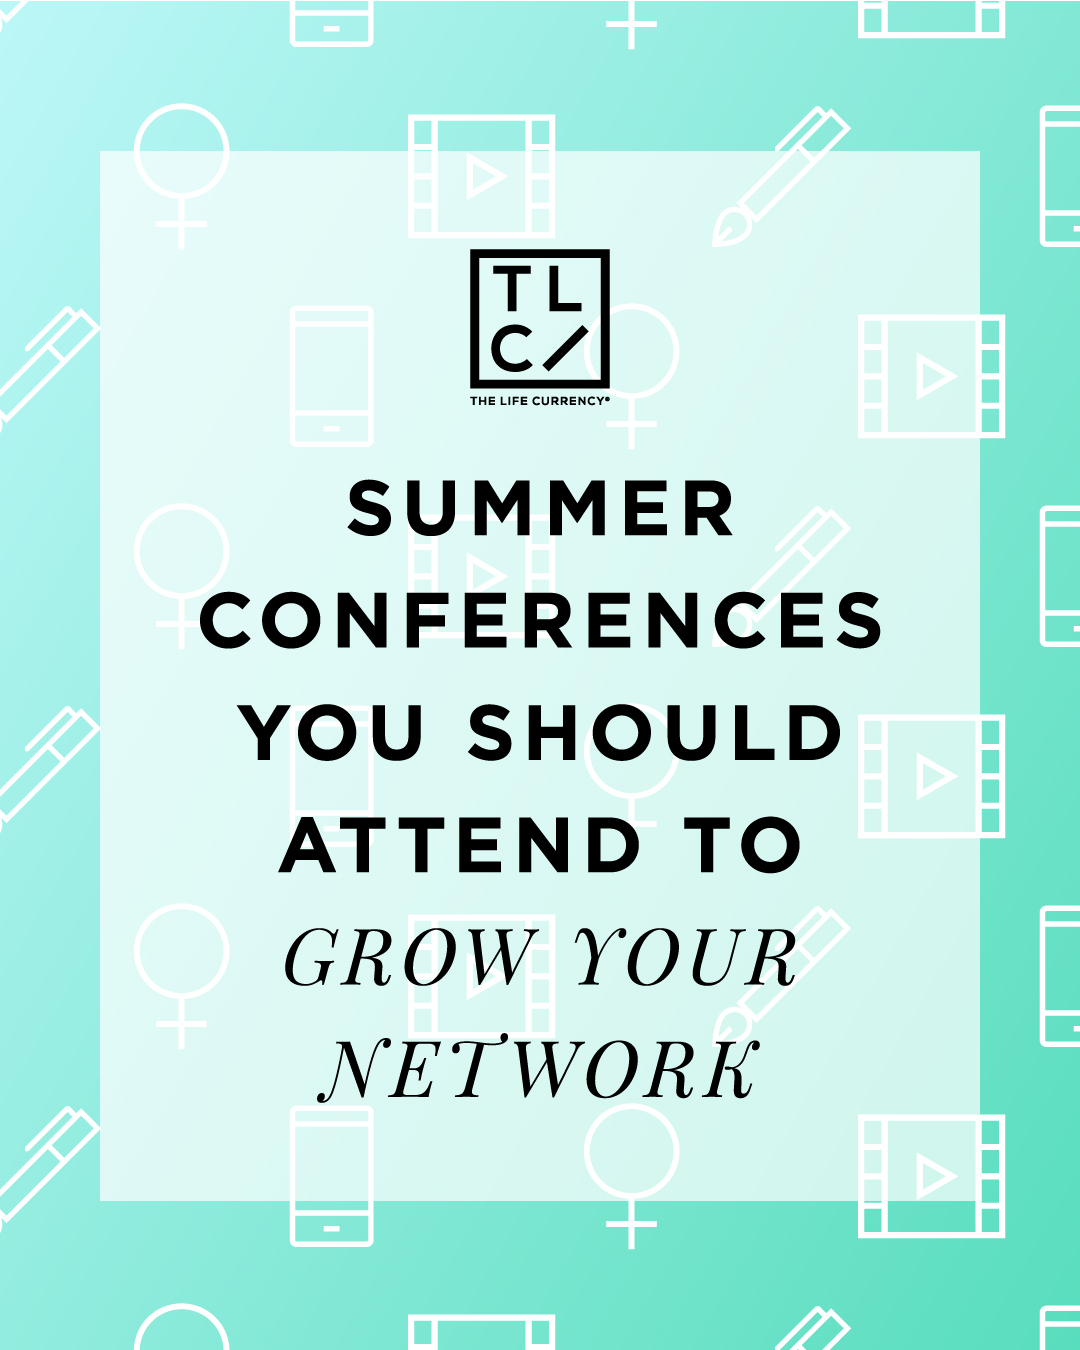 Summer Conferences You Should Attend to Grow Your Network